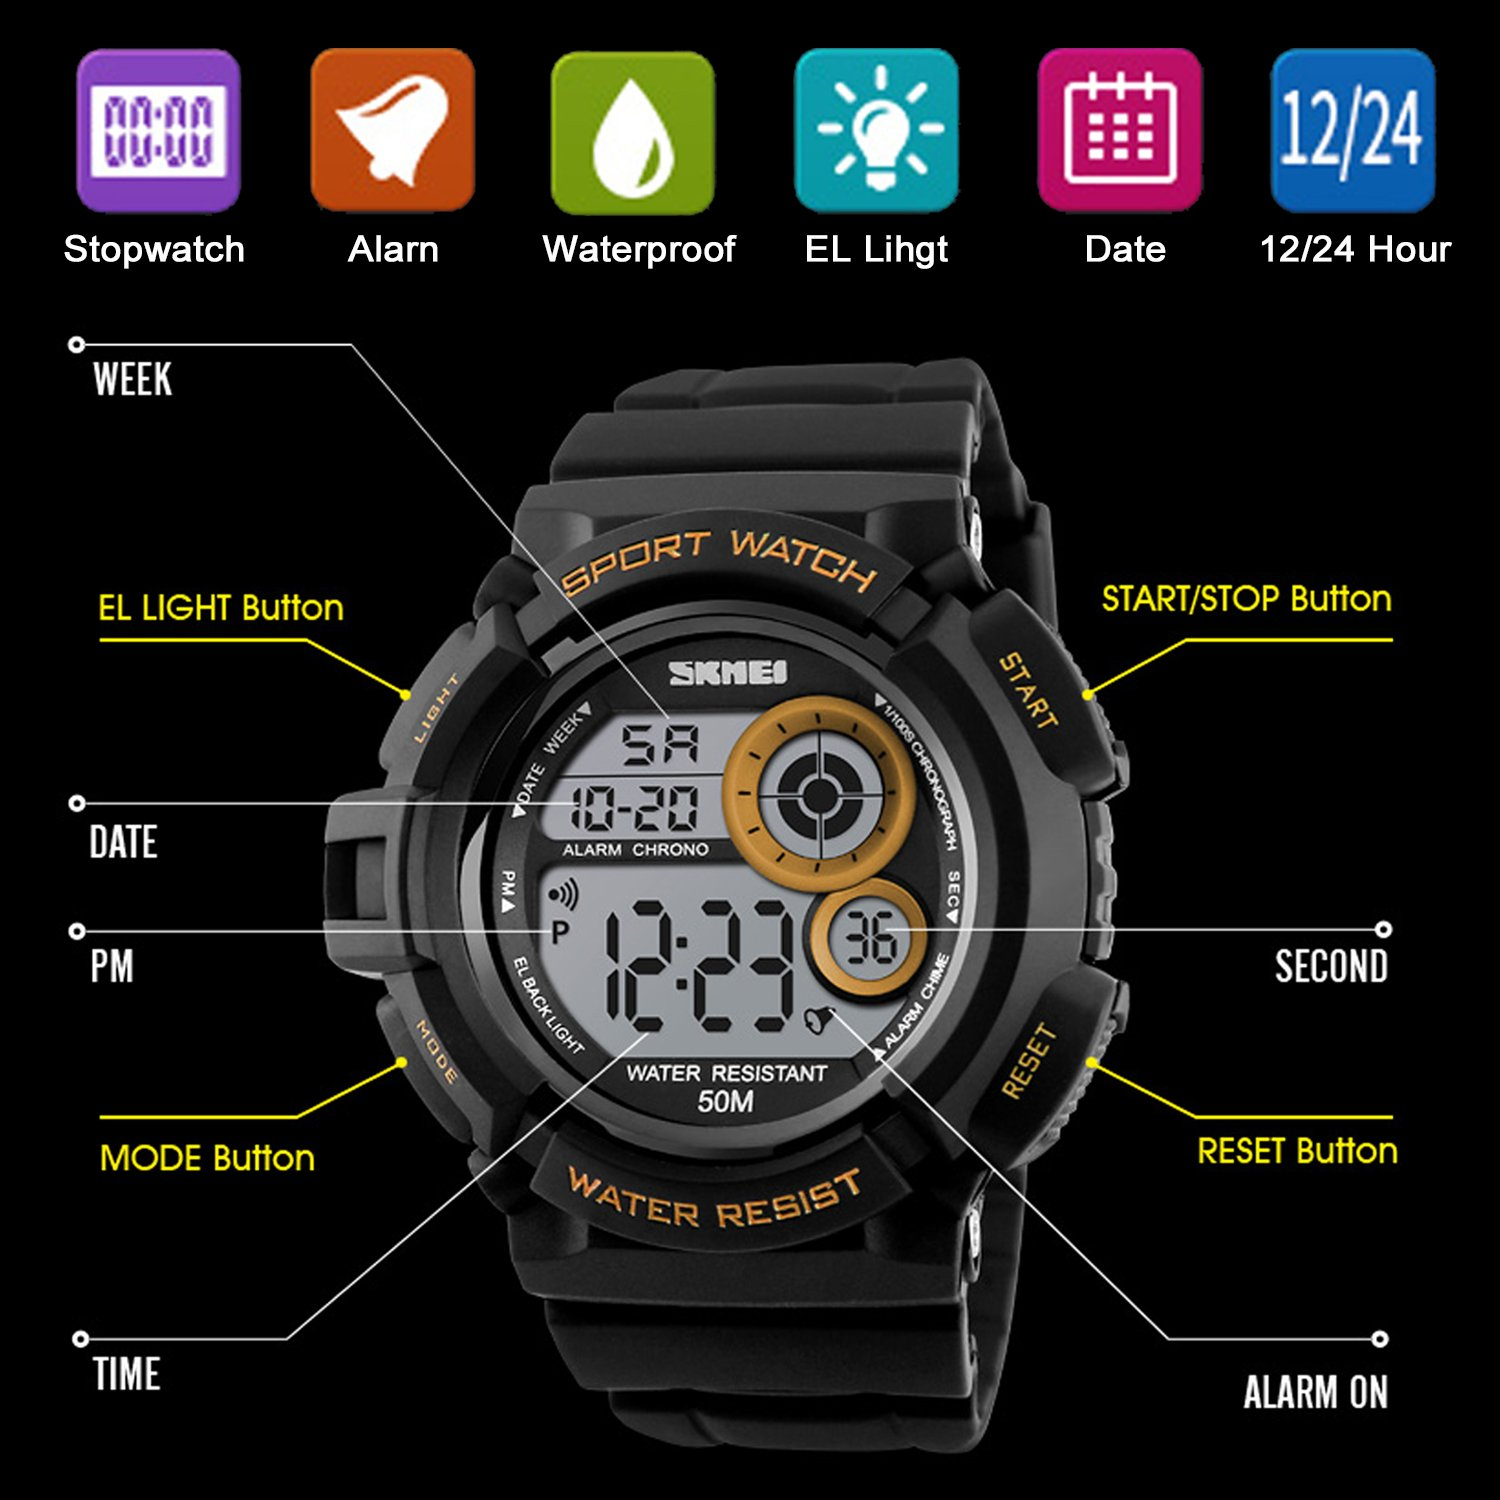 Men's Digital Sports Watch LED Screen Large Face Military Watches and Waterproof Casual Luminous Stopwatch Alarm Simple Army Watch Black by USWAT (Image #5)